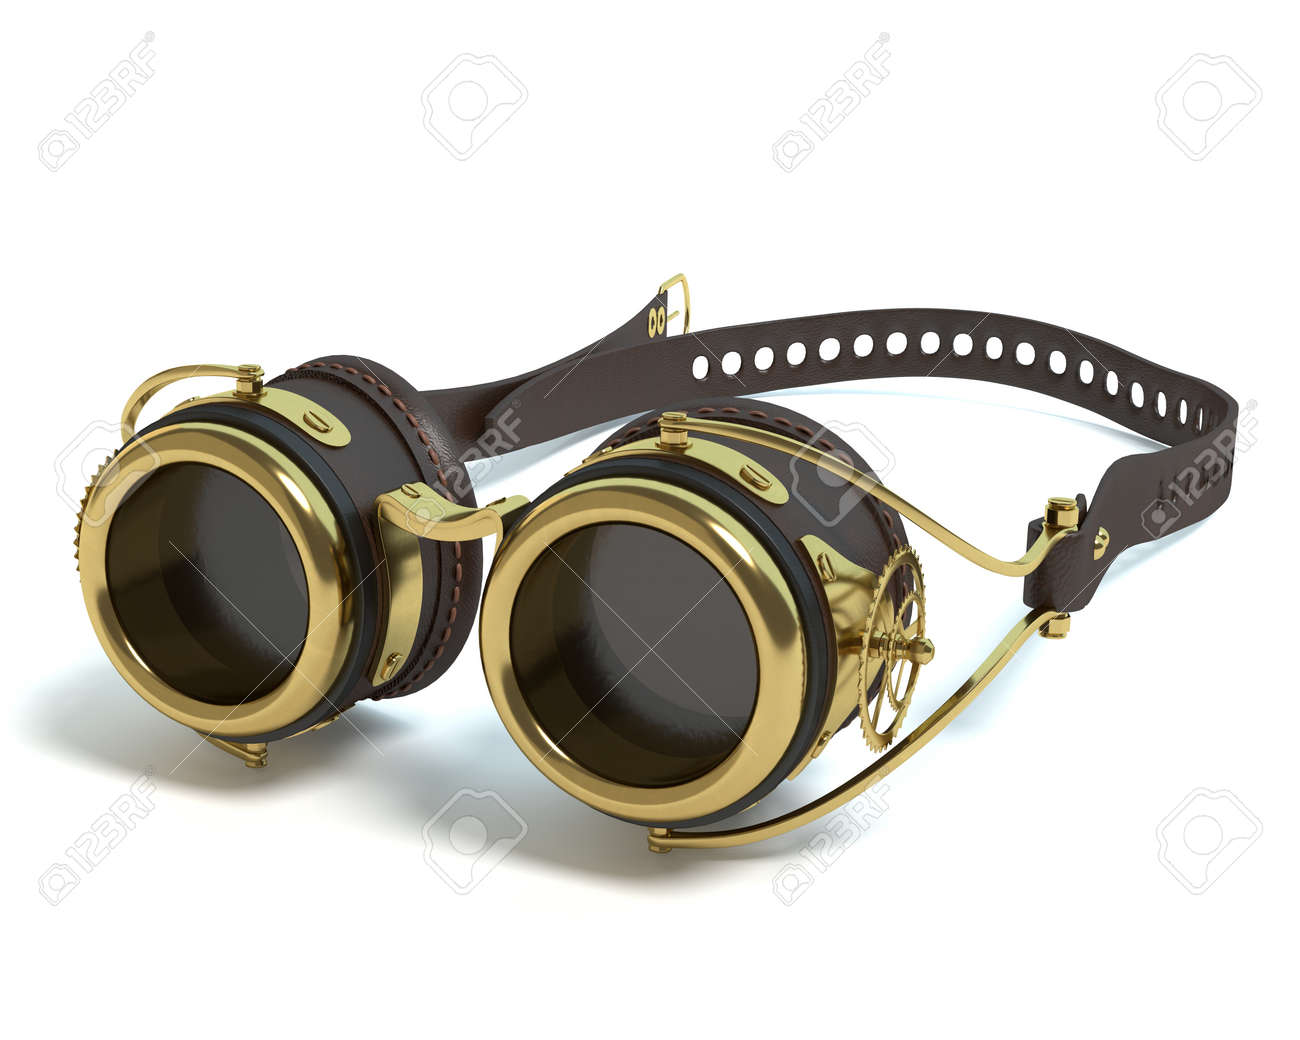 a521a789b10 3d illustration of steampunk goggles Stock Illustration - 57873100